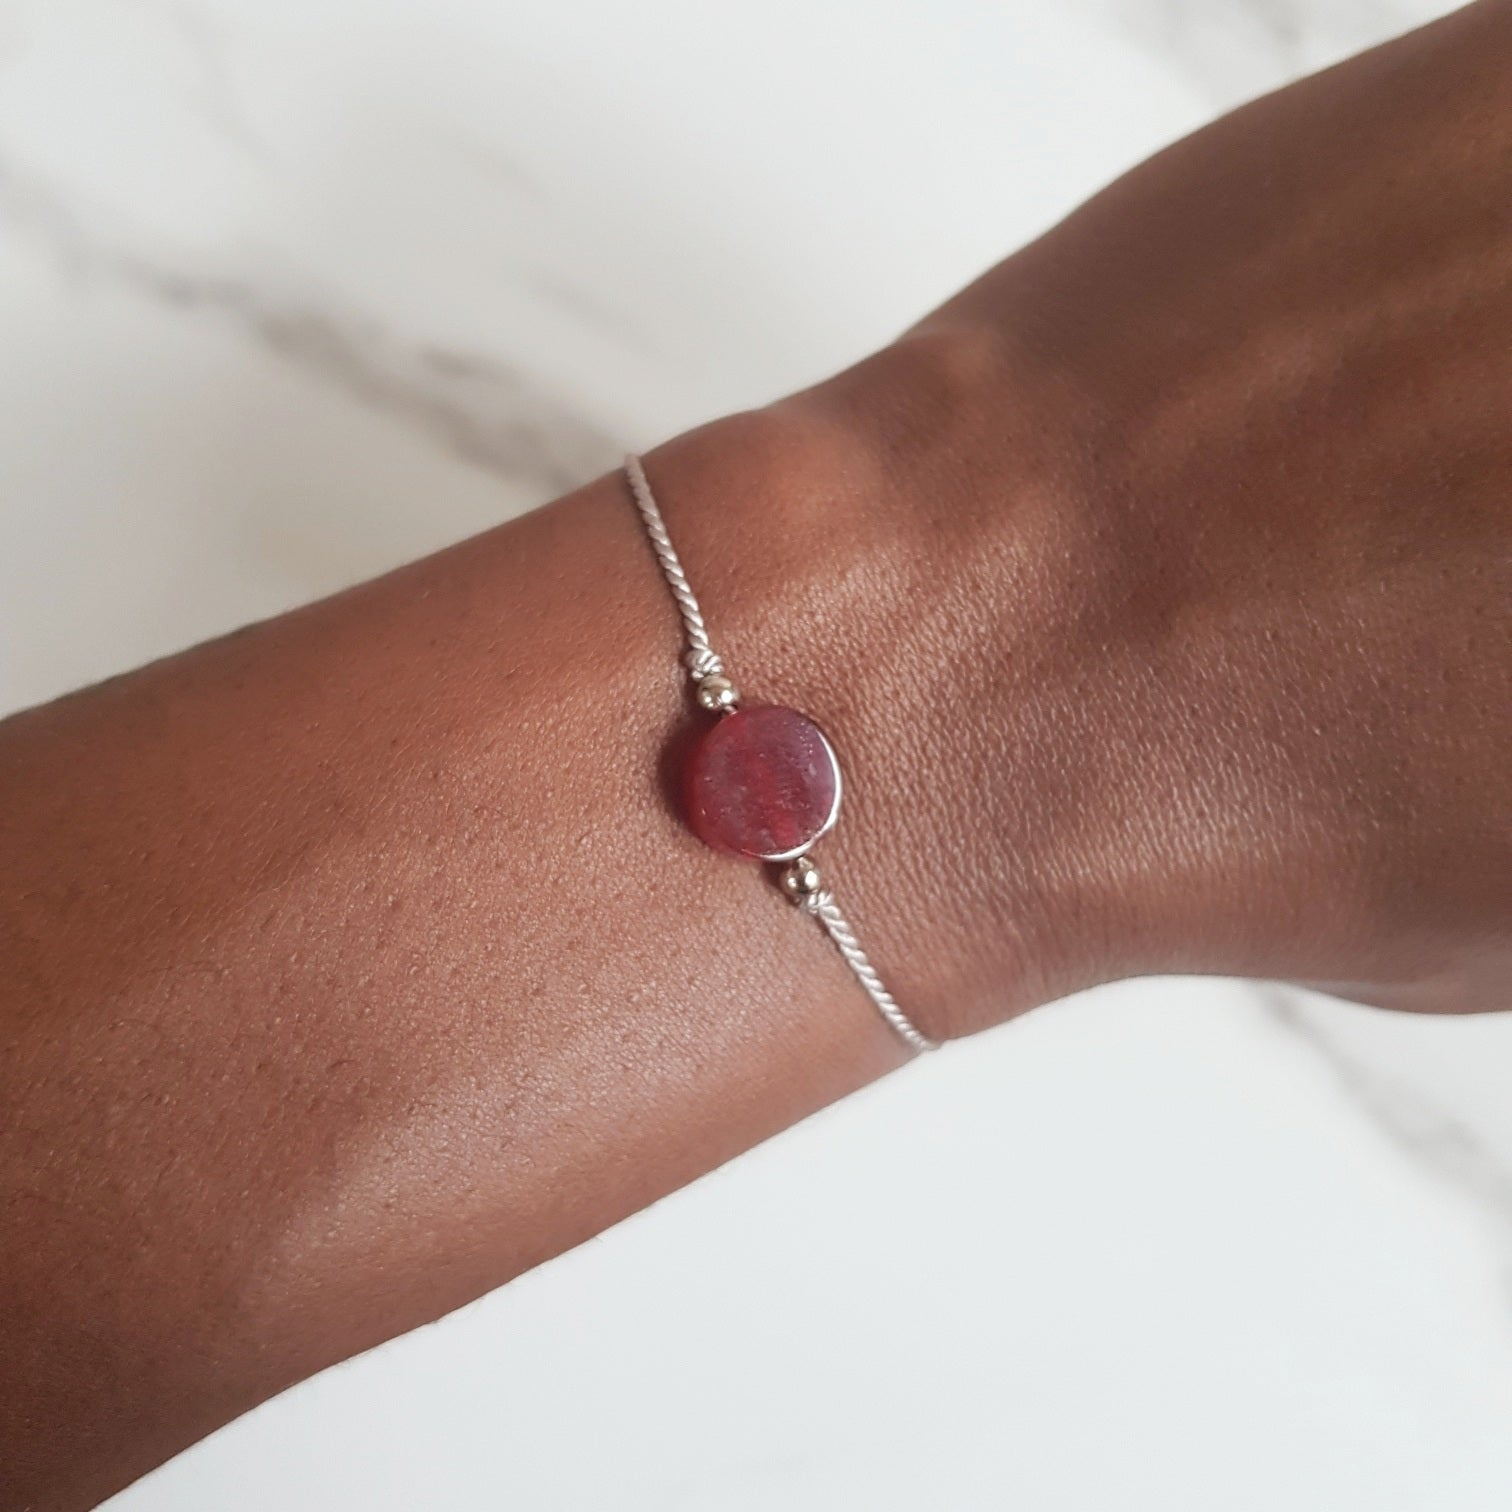 Nylon Bracelet -Red Jade